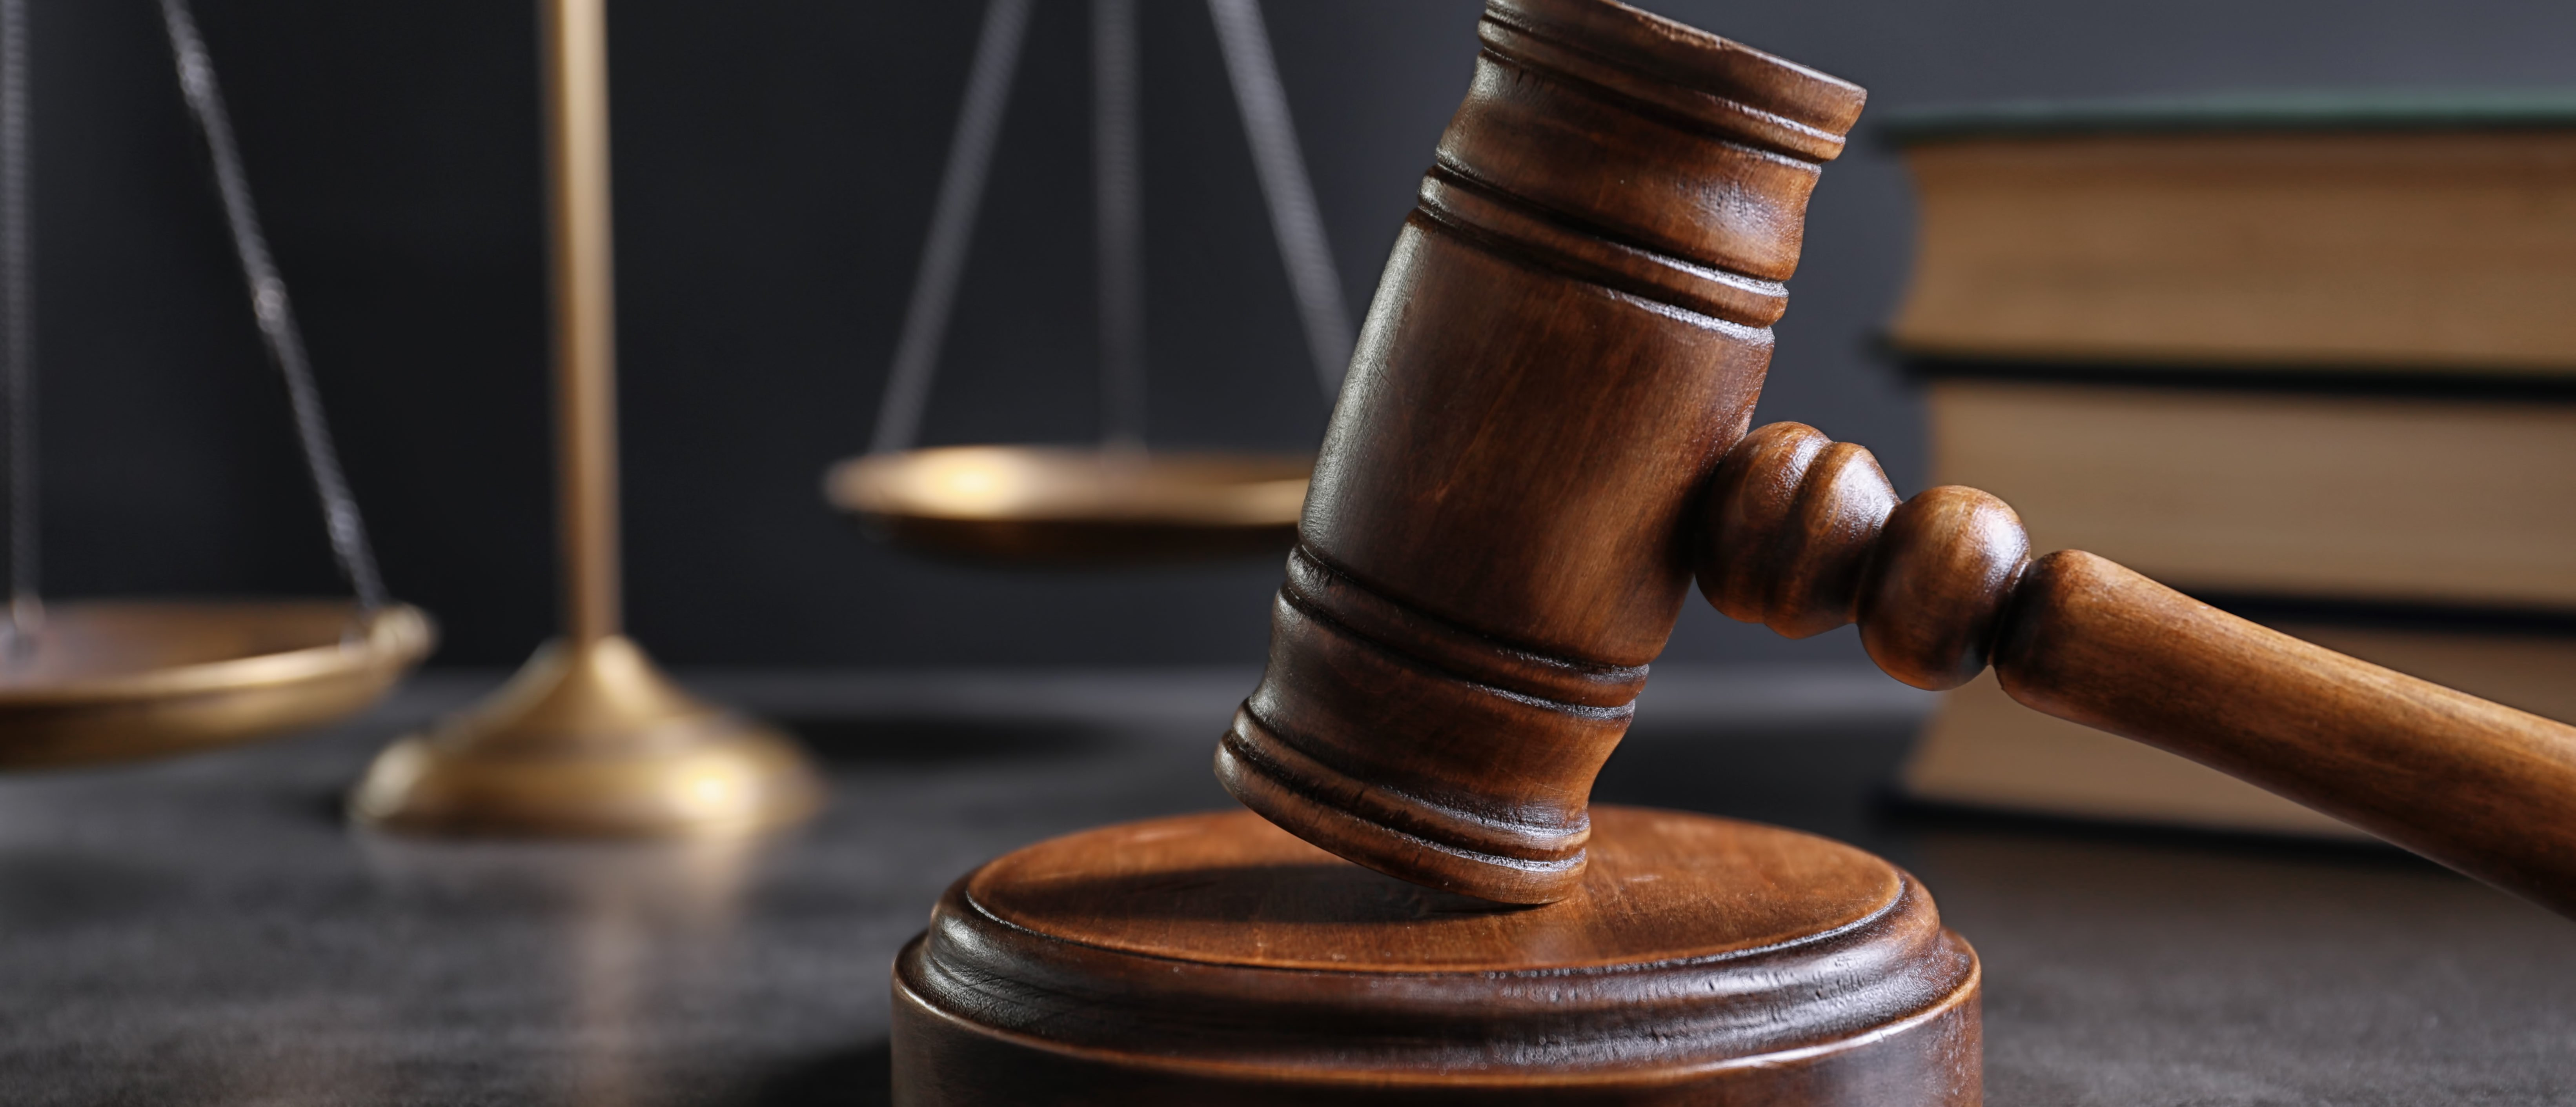 Judge's gavel and blurred scales on background. (New Africa/Shutterstock)